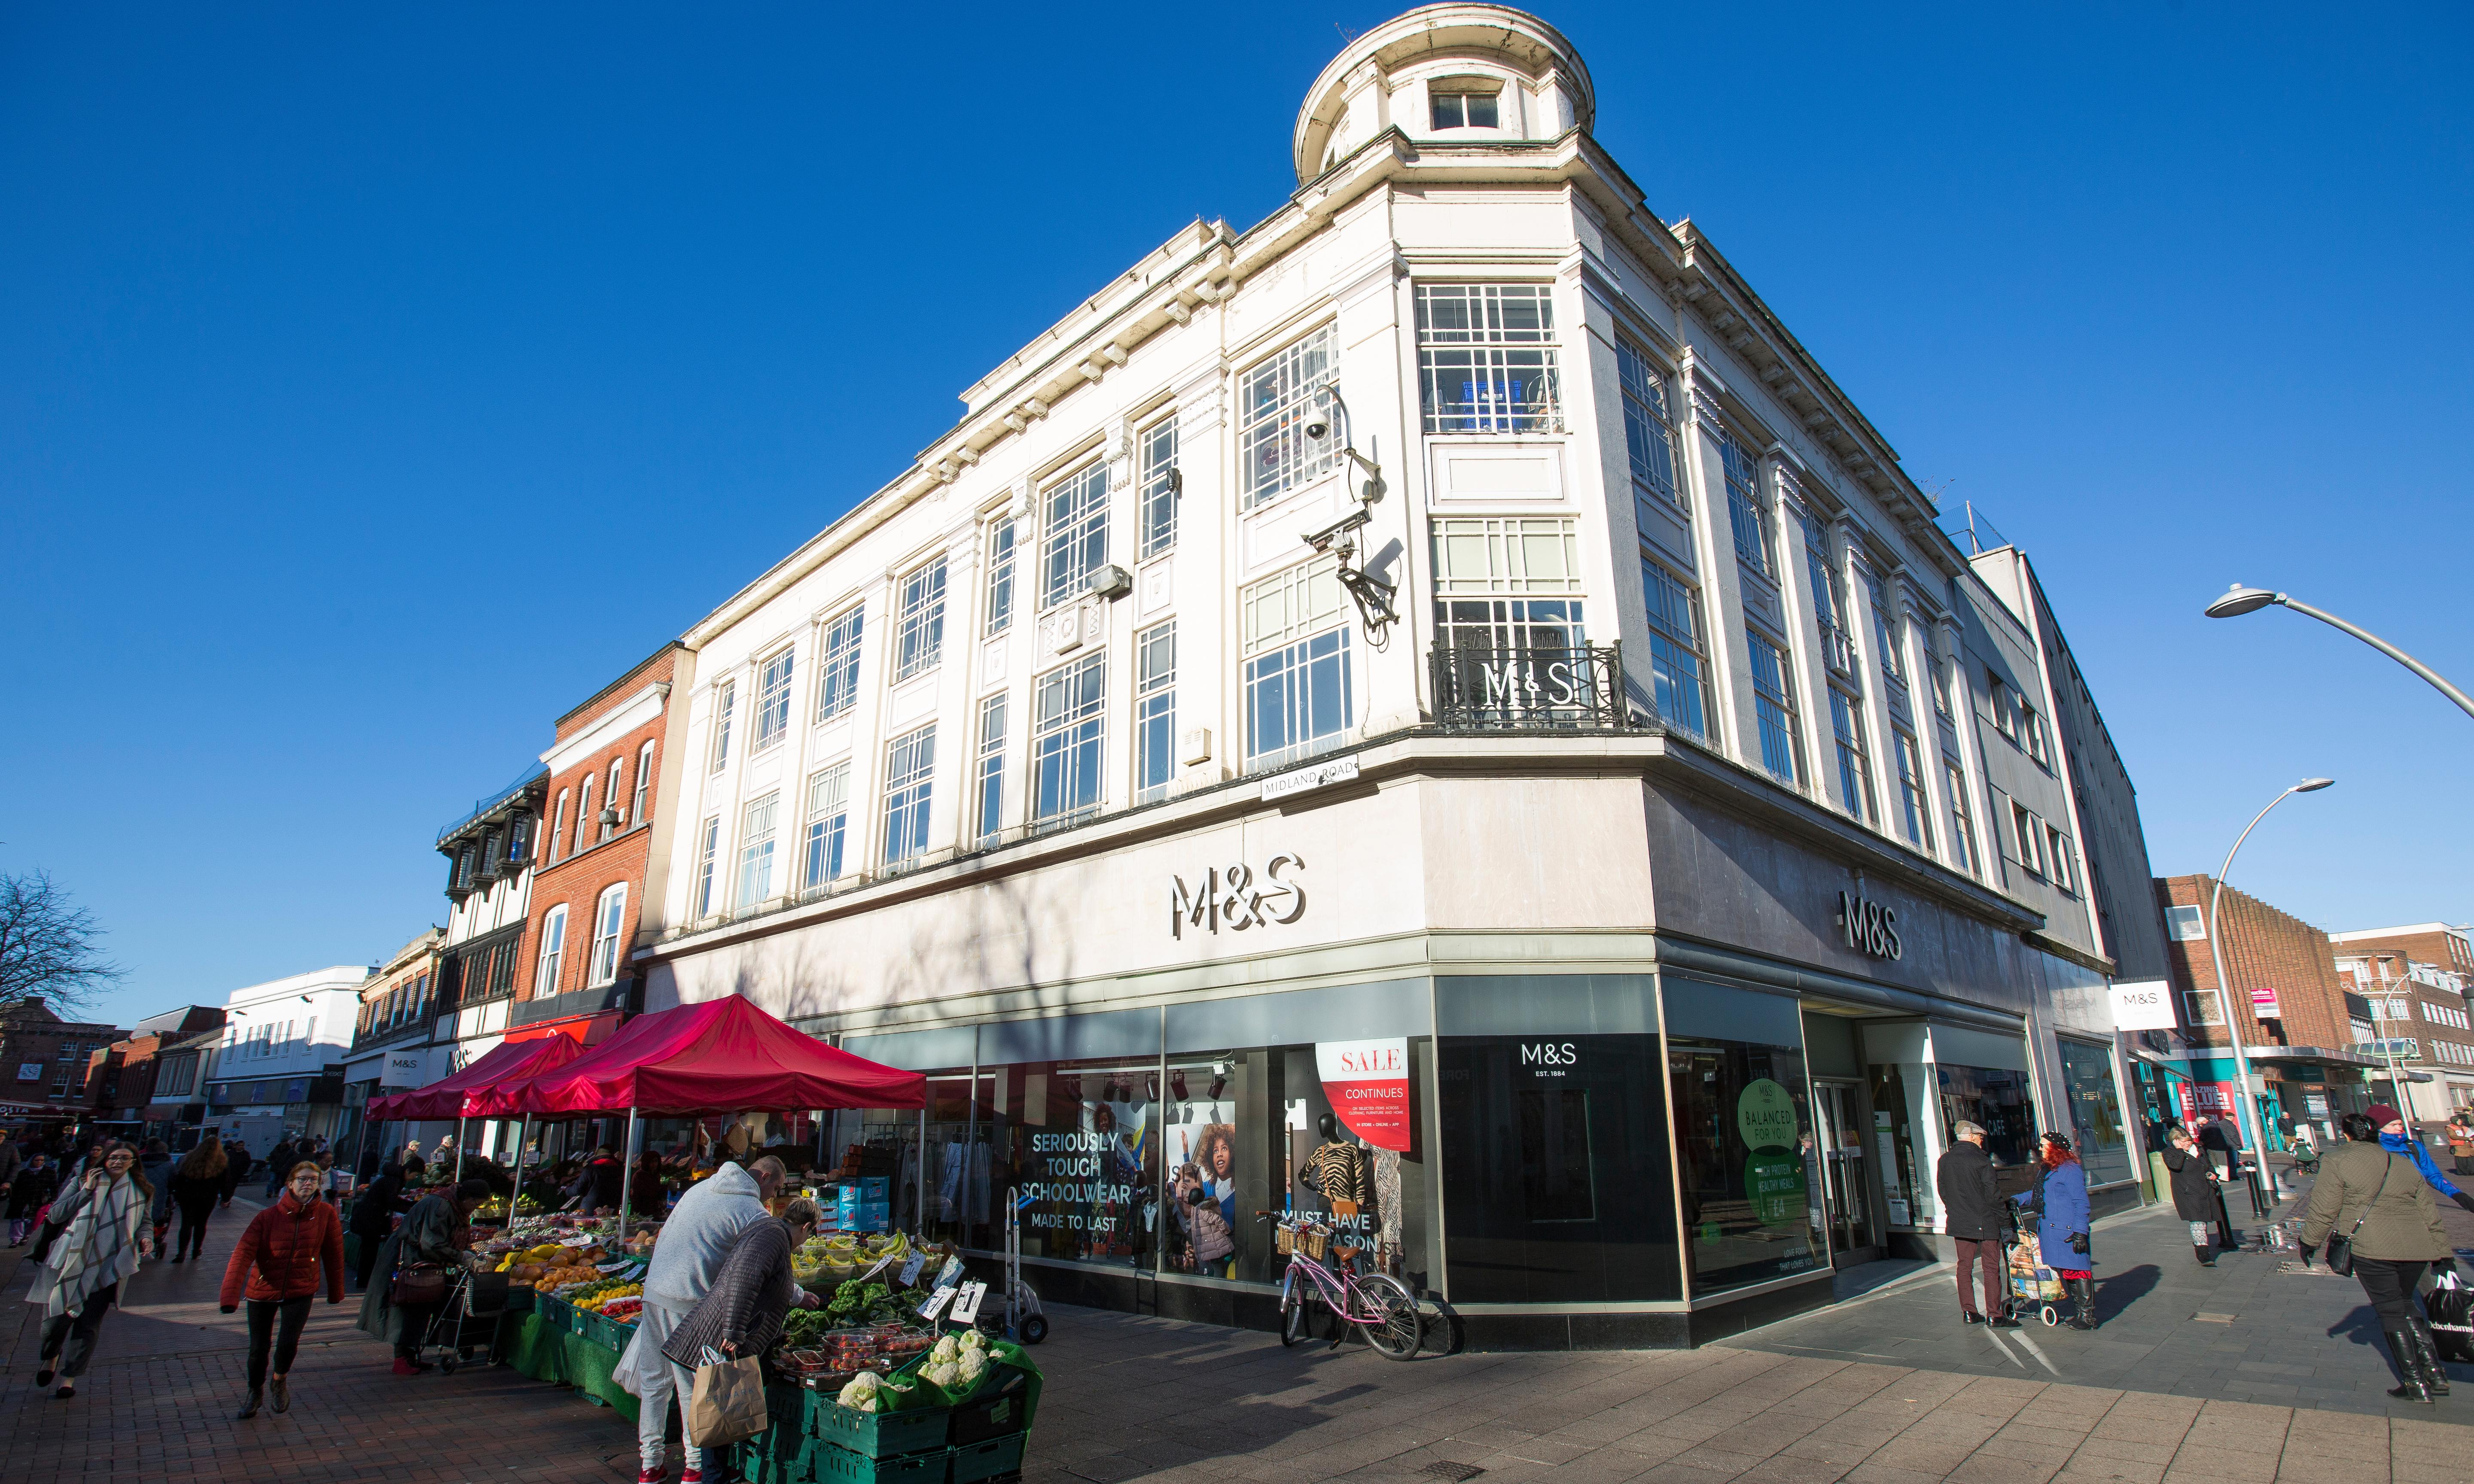 'We have always had a Marks & Spencer here. It's very sad'